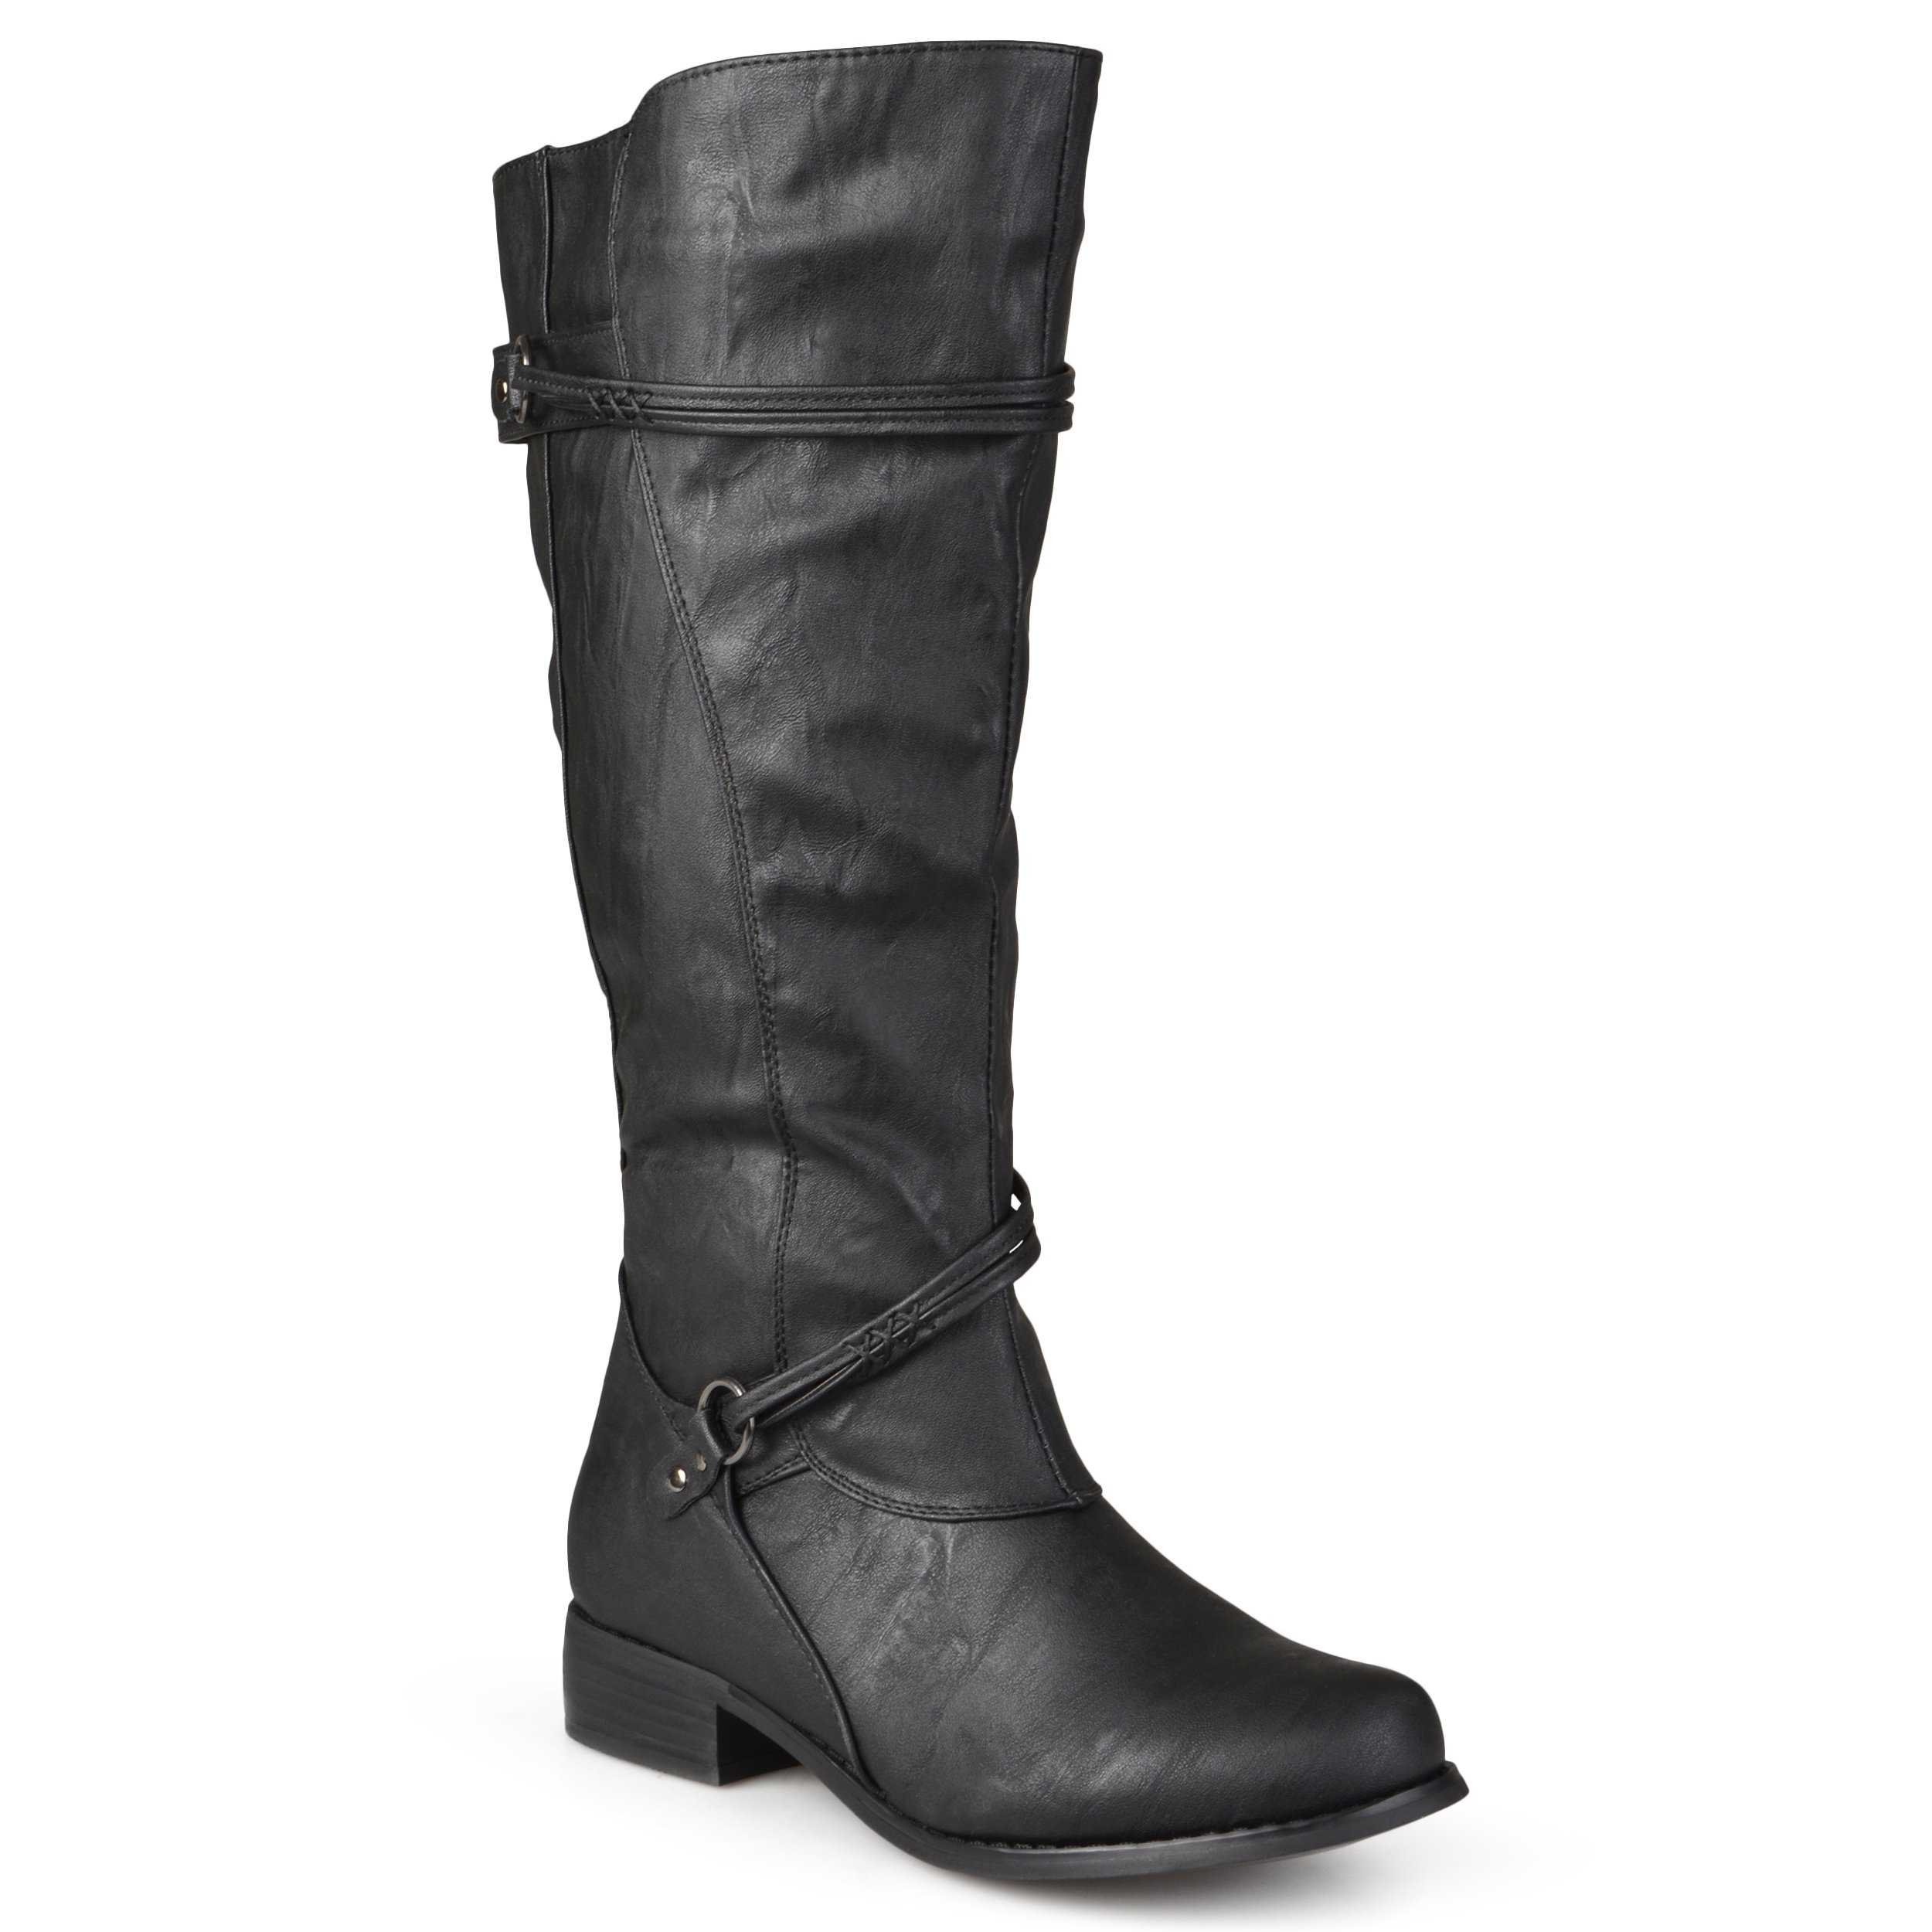 Journee Collection Womens Regular Sized and Wide-Calf Ankle-Strap Buckle Knee-High Riding Boots Black, 10 Extra Wide US